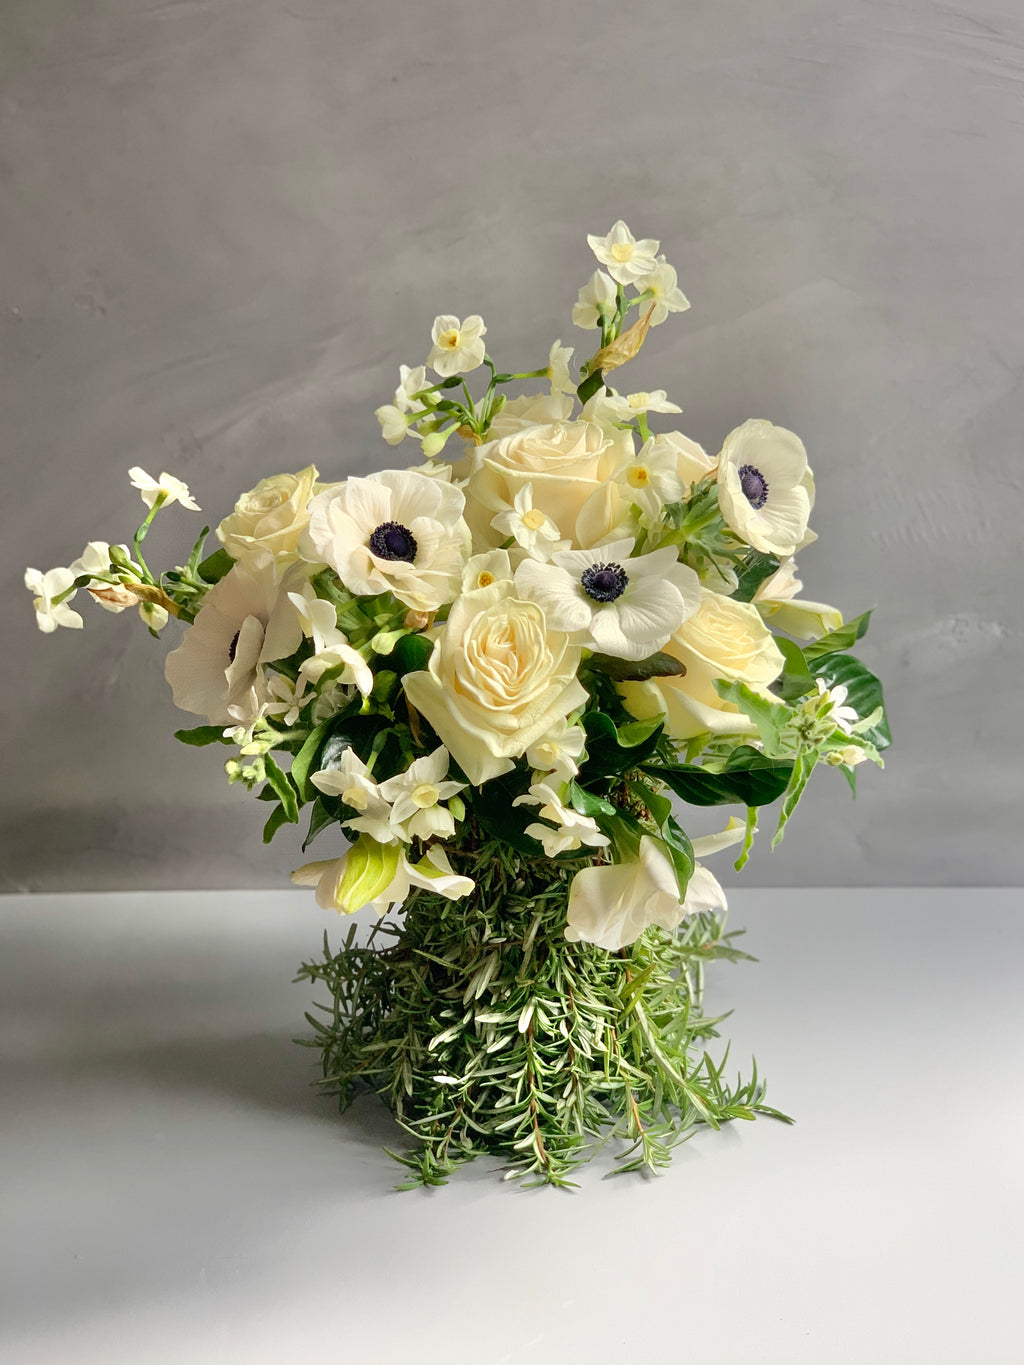 Rosemary Rhapsody flower arrangement